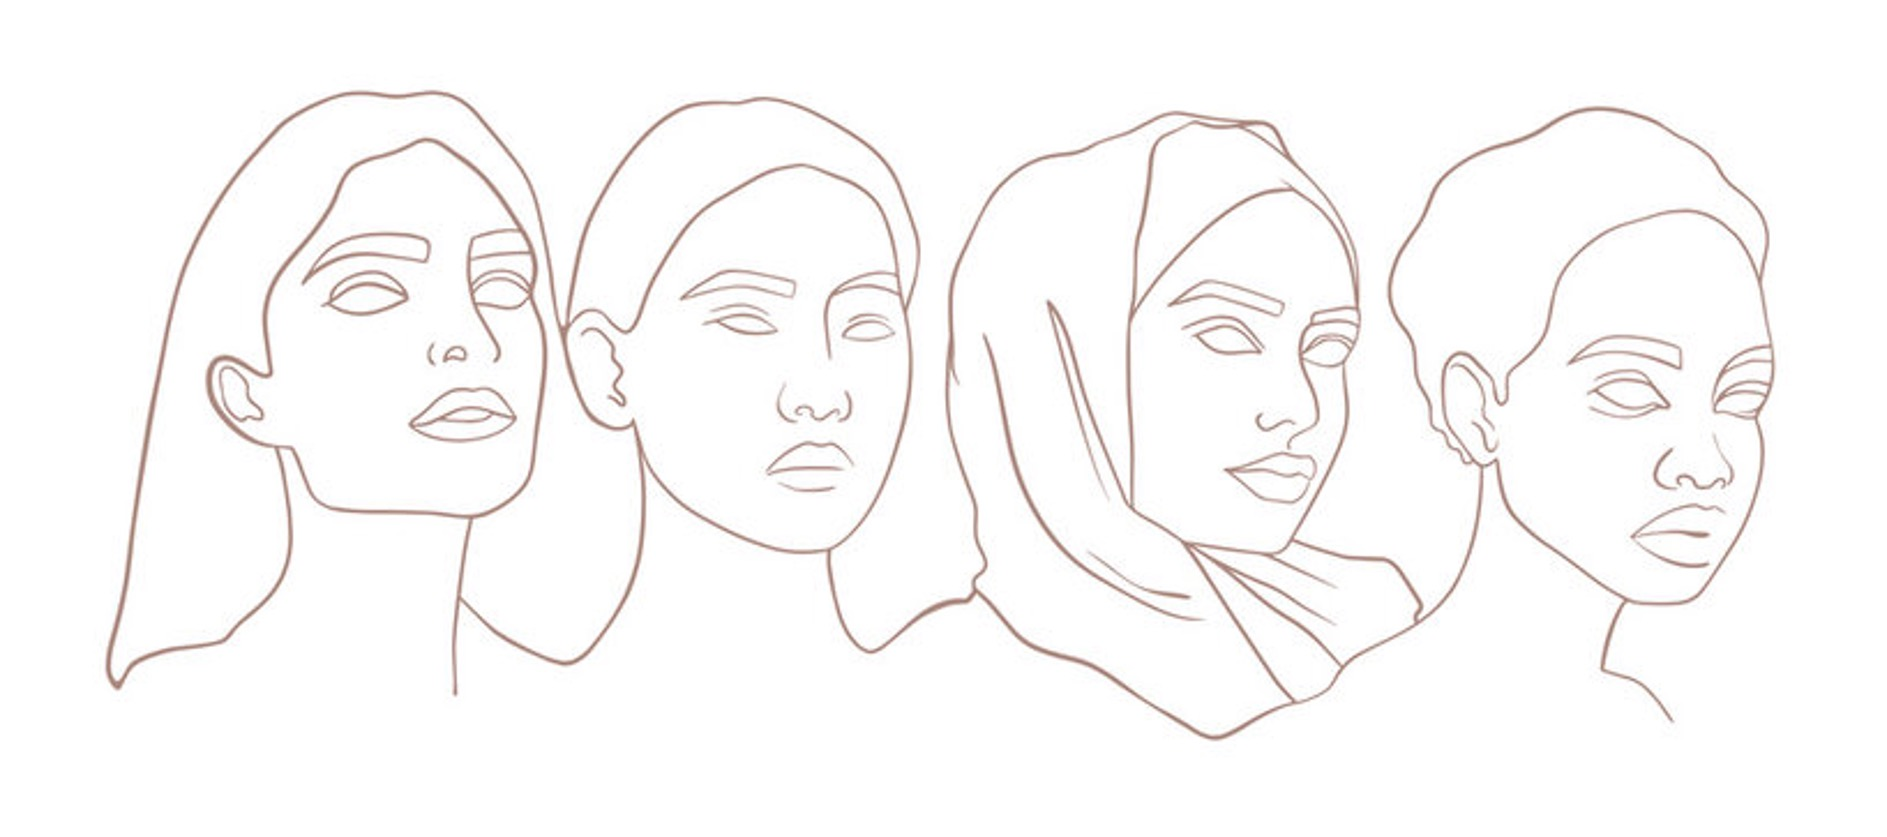 fine line outline of 4 women of different backgrounds